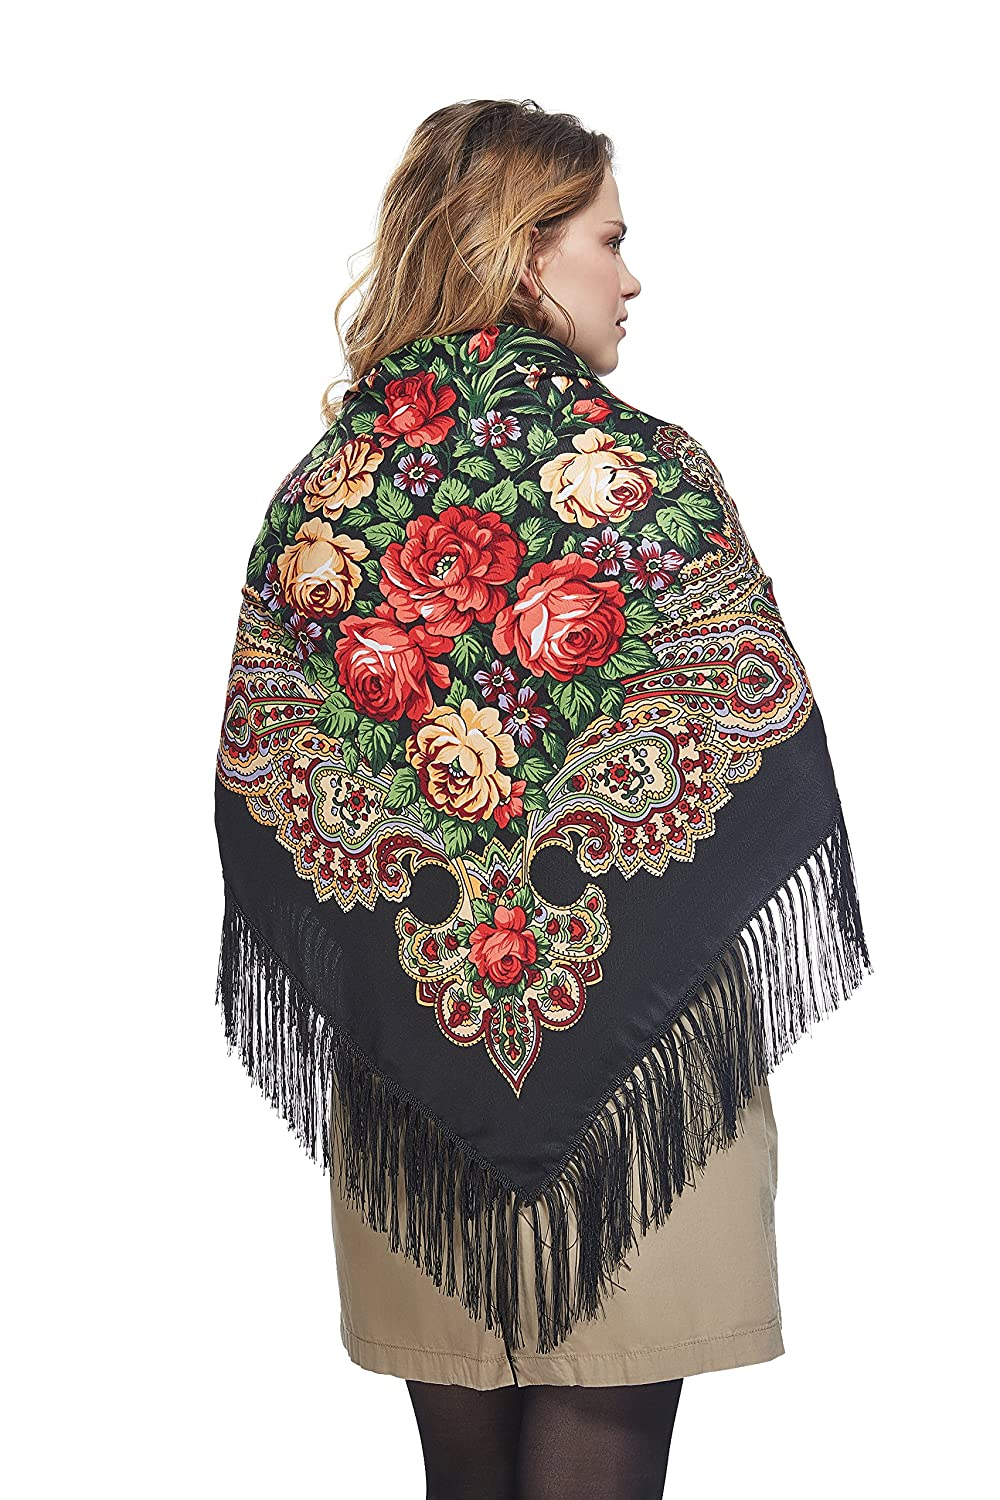 1920s Style Shawls, Wraps, Scarves Ladies Oversized Floral Shawl With Tassels Ukrainian Polish Russian Wrap 51 x 51